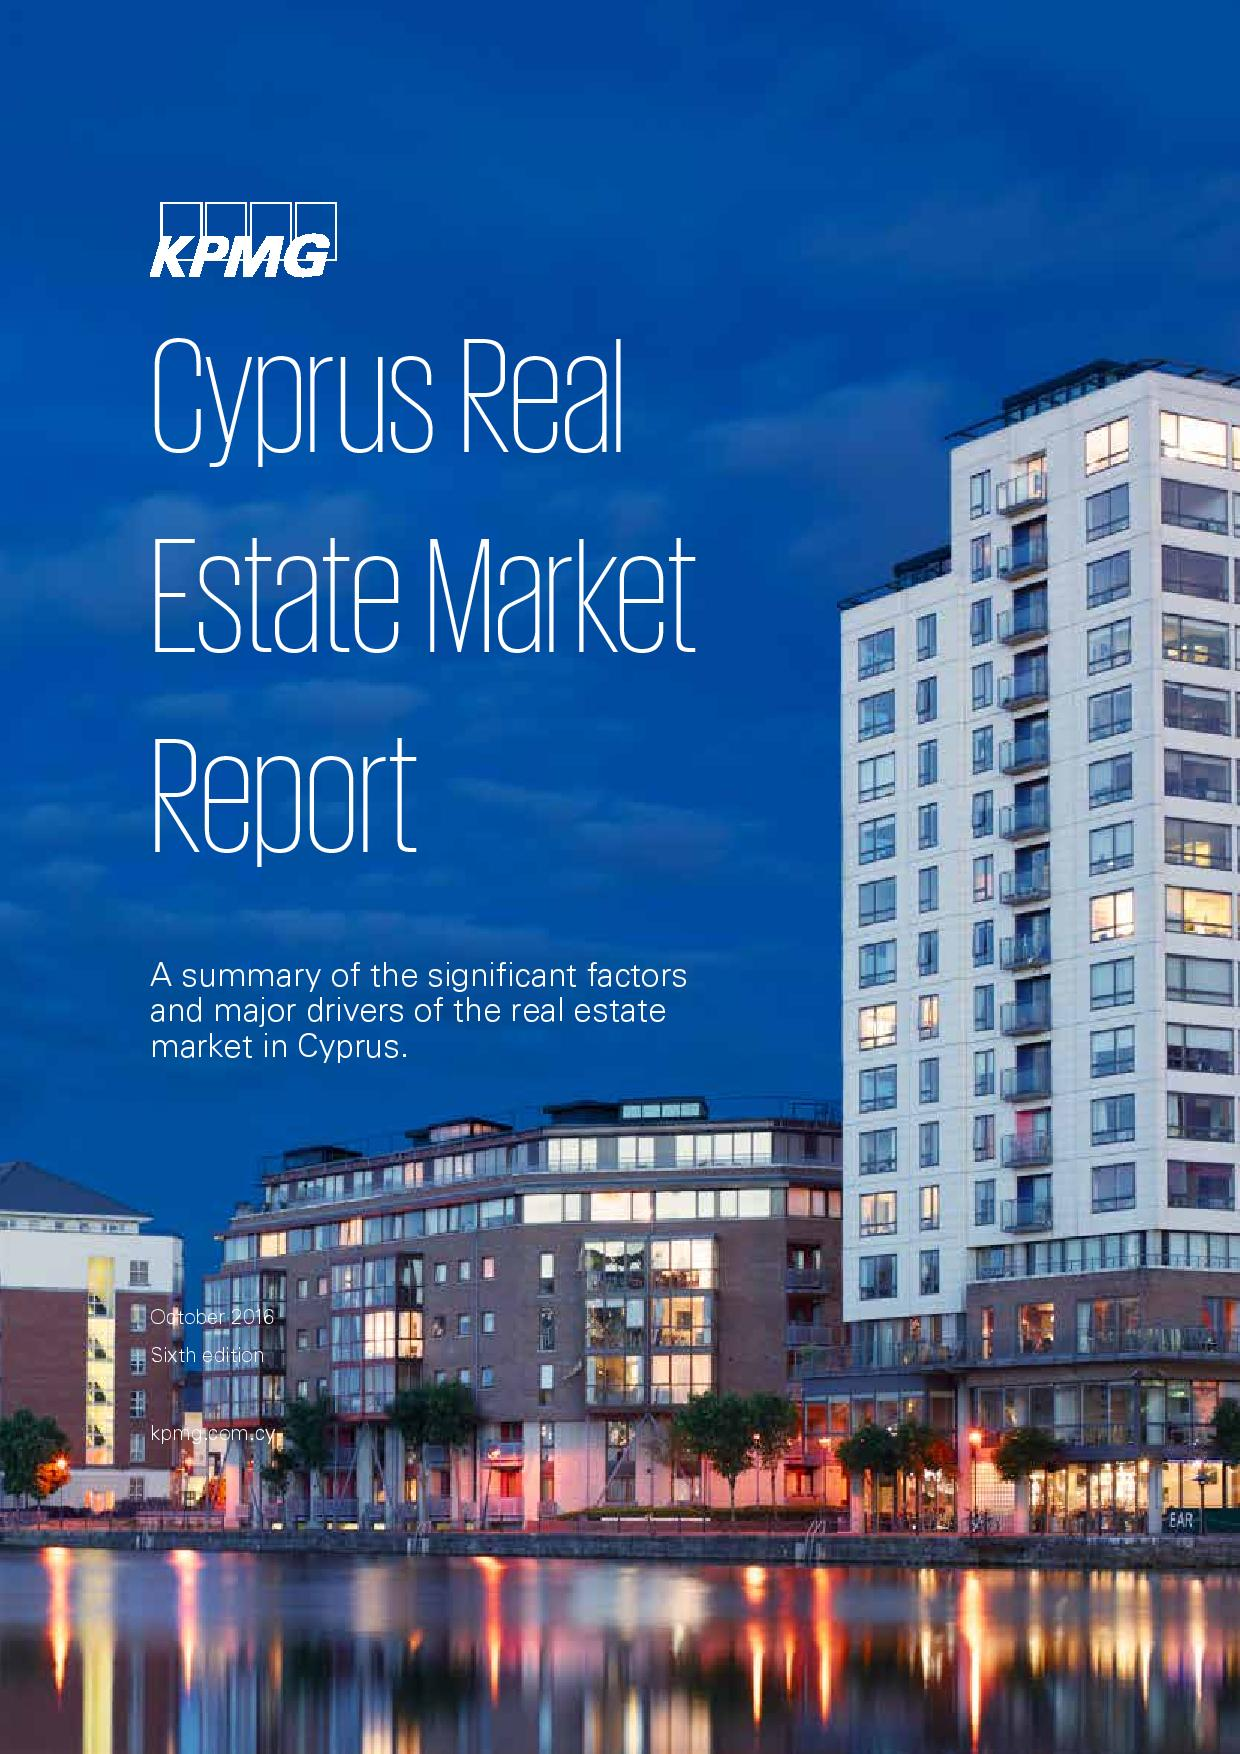 KPMG: Cyprus Real Estate Market Report